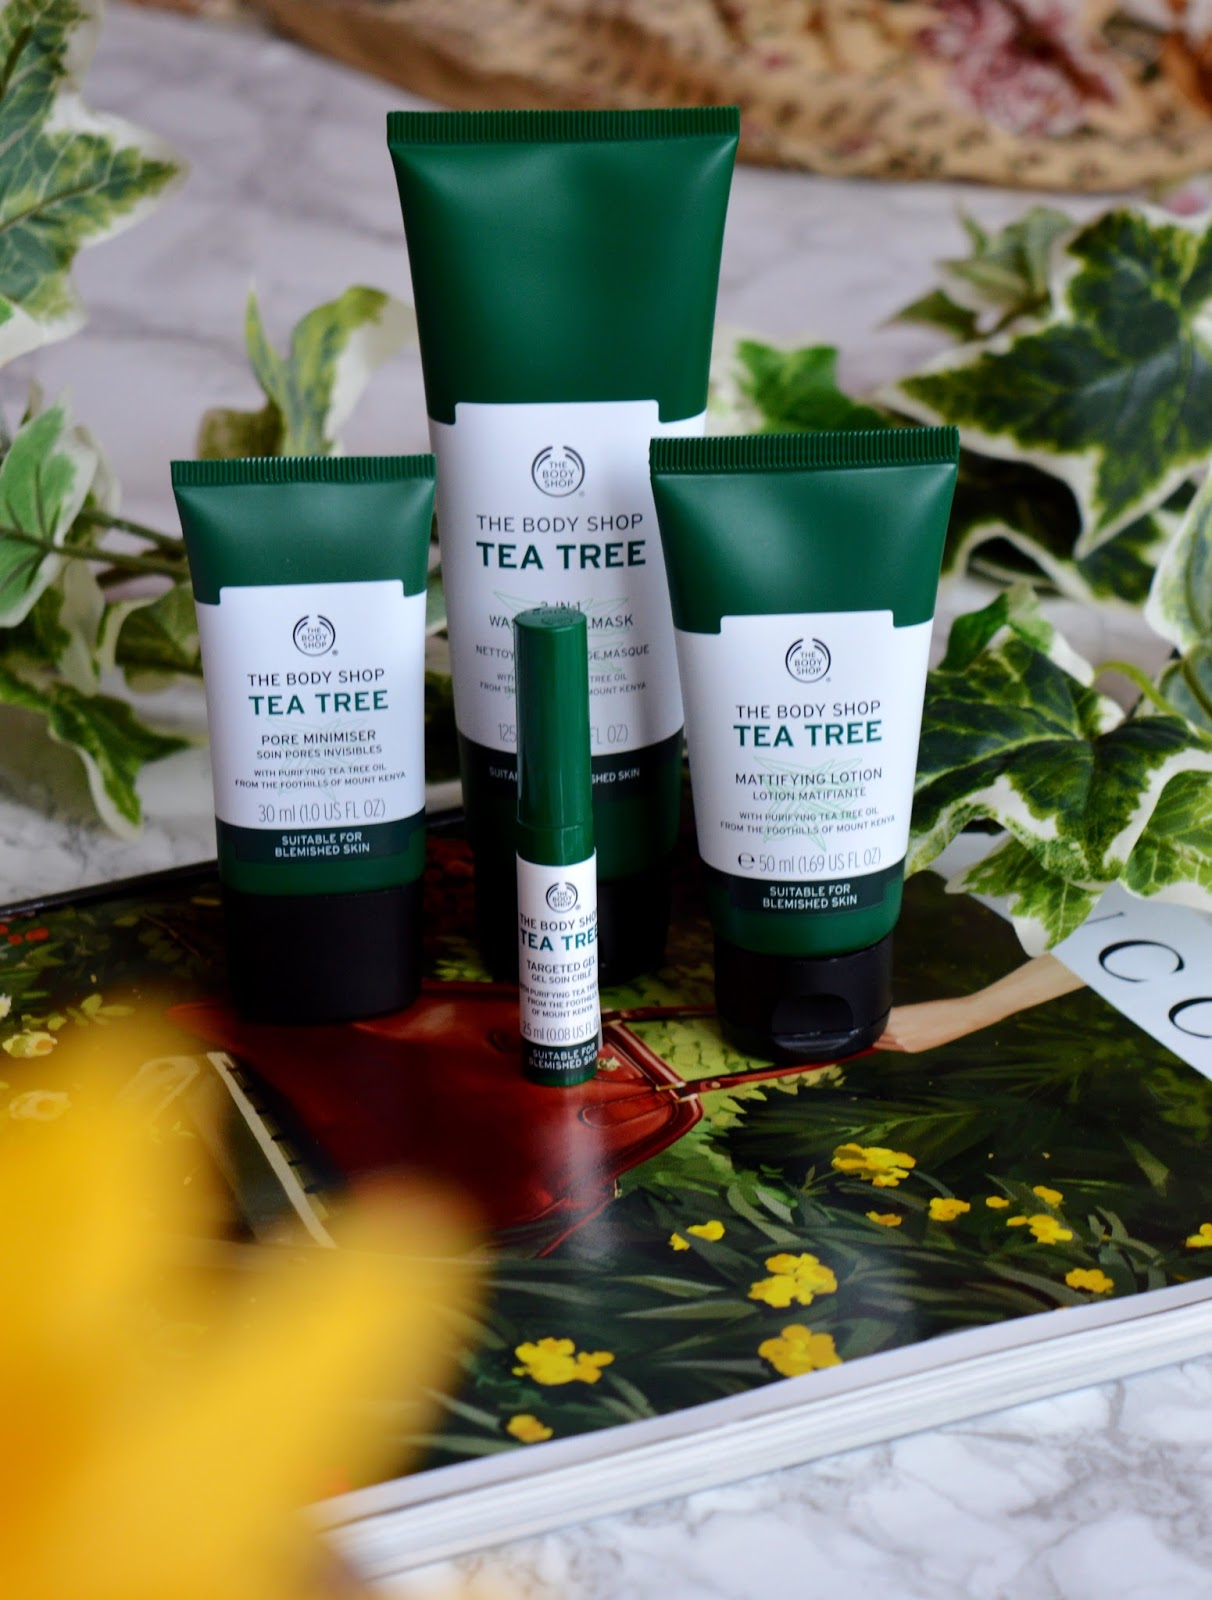 THE BODY SHOP TEA TREE RANGE REVIEW | The Perks Of Mollie Quirk